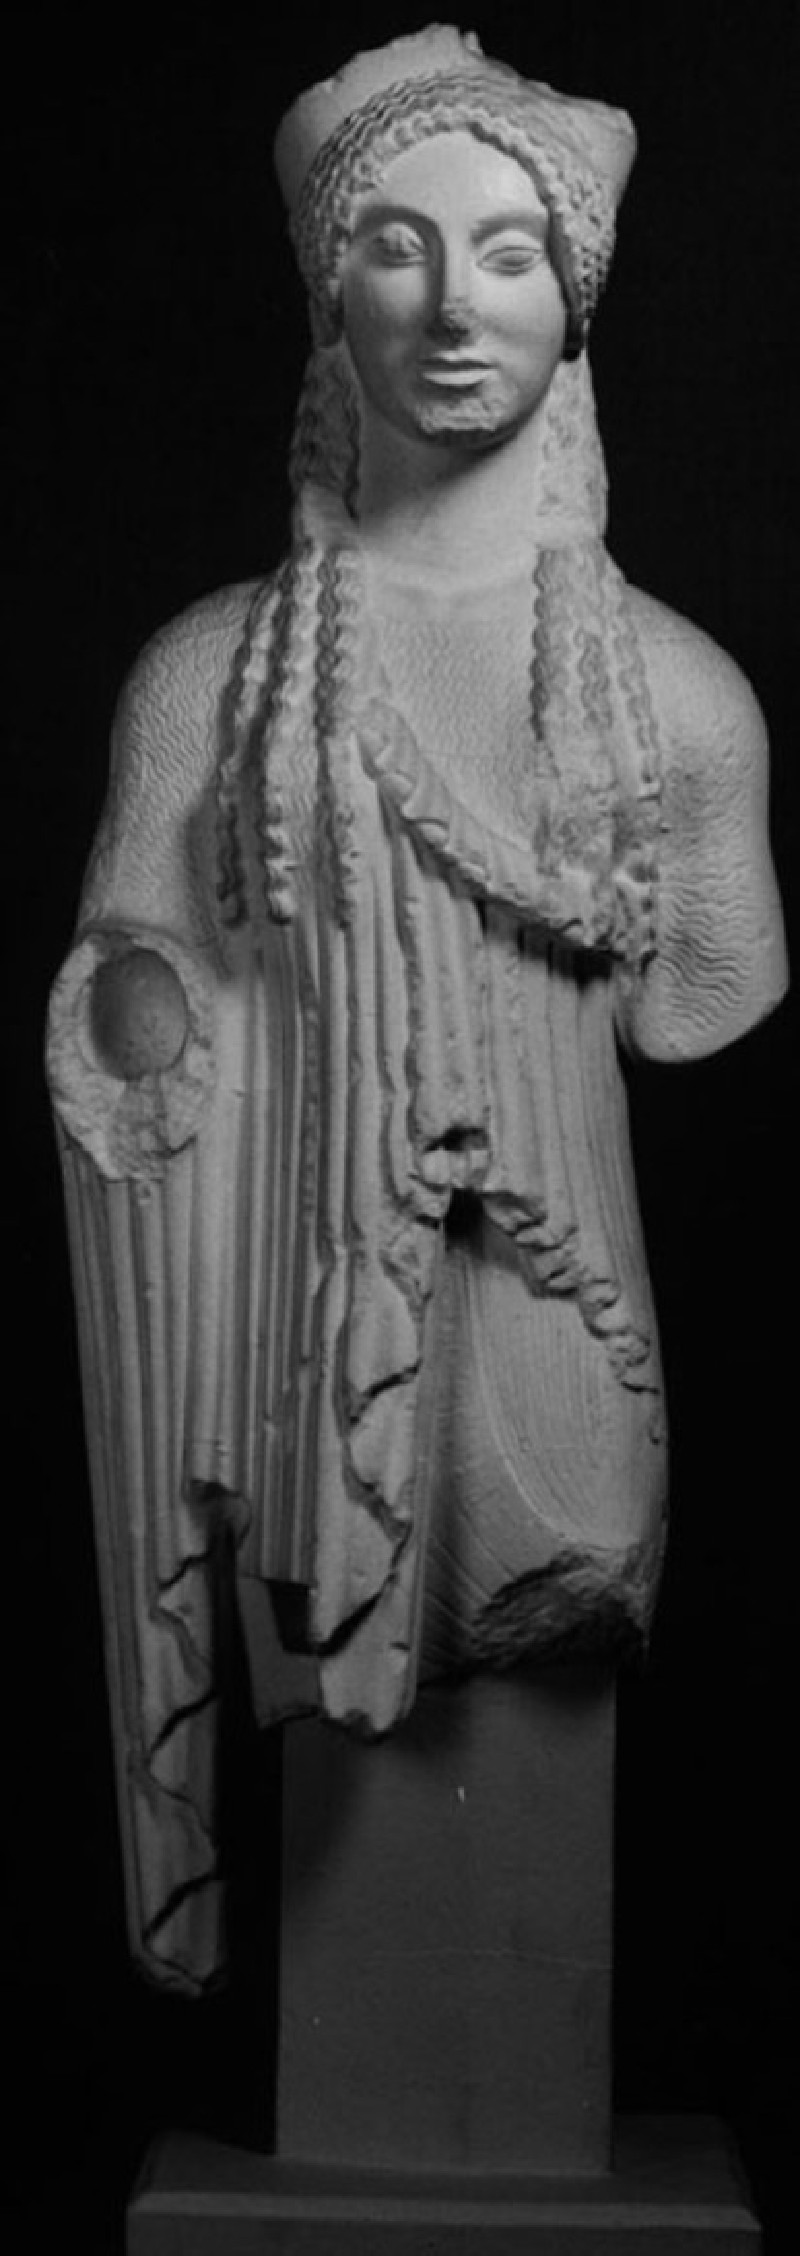 Cast of Kore 674 from the Acropolis, Athens (CG.B.56, record shot)